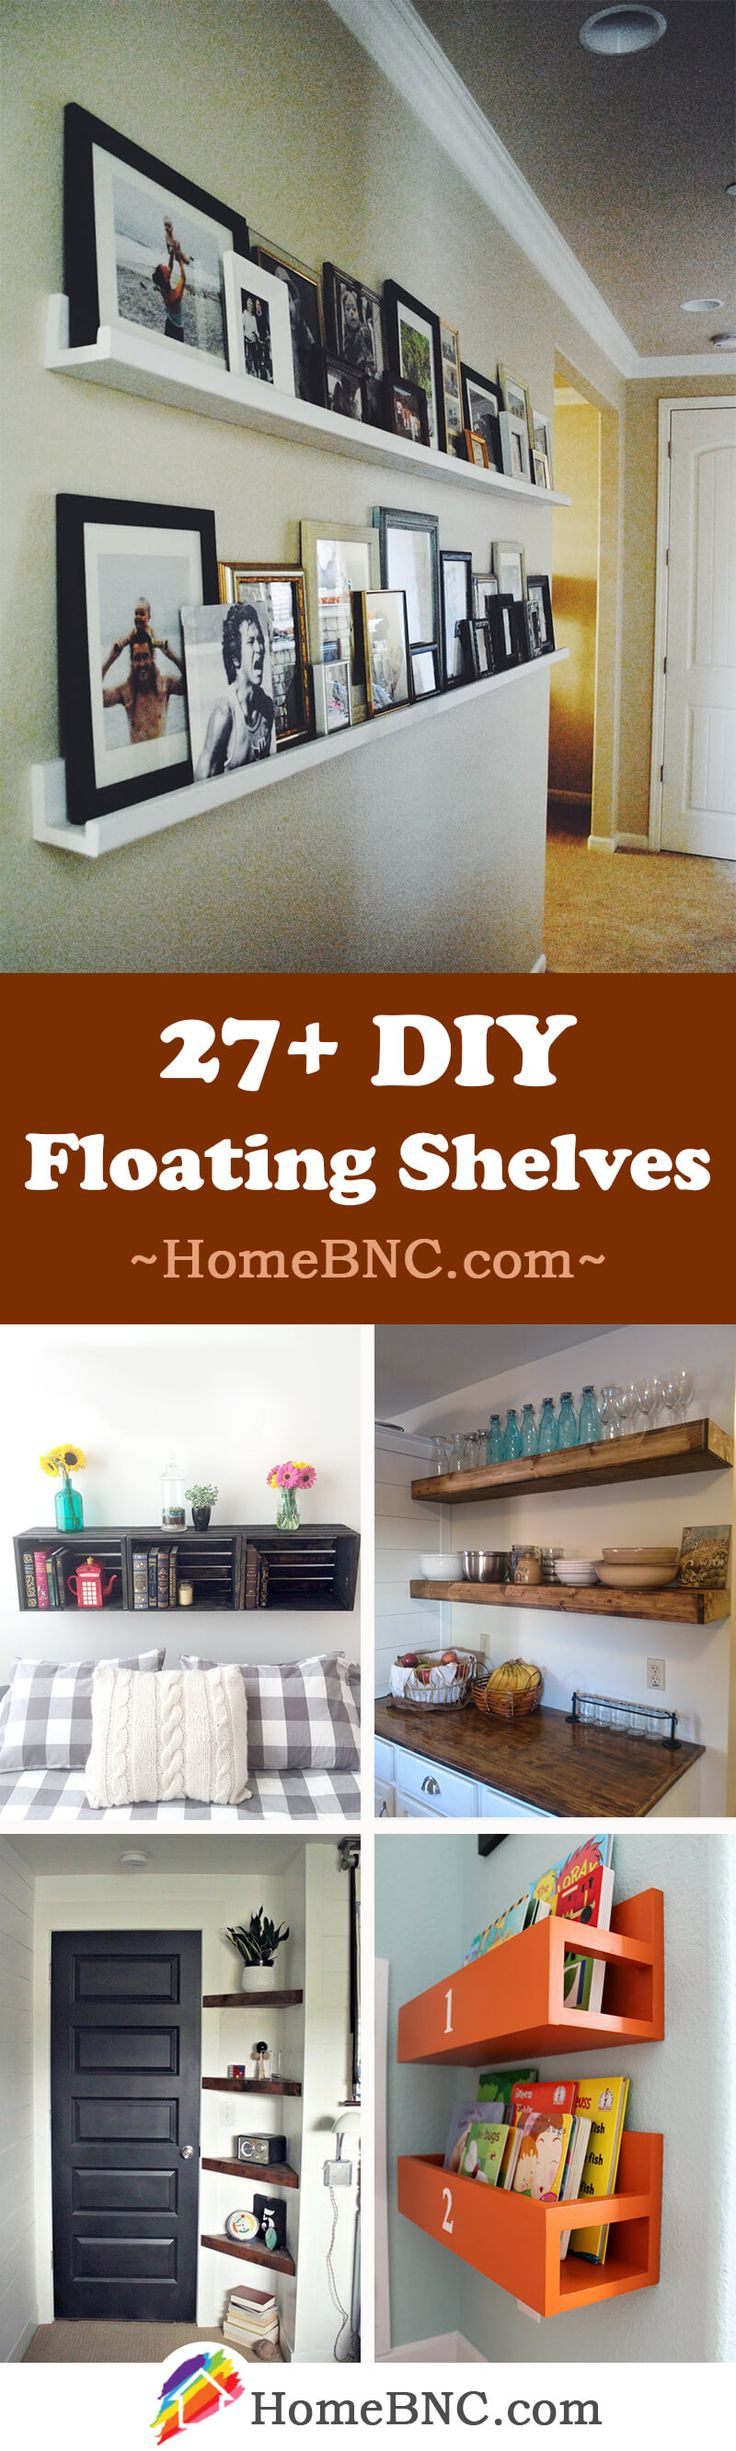 DIY Floating Shelf Decor Ideas: Floating shelves get the job done, look more modern, and take up minimal space. All you need to get started with this diy project is a free wall, some diy floating shelf ideas, and the minimal tools required. Floating shelves can be as simple as a piece of beautifully stained wood that hangs on your wall and appears to 'float.